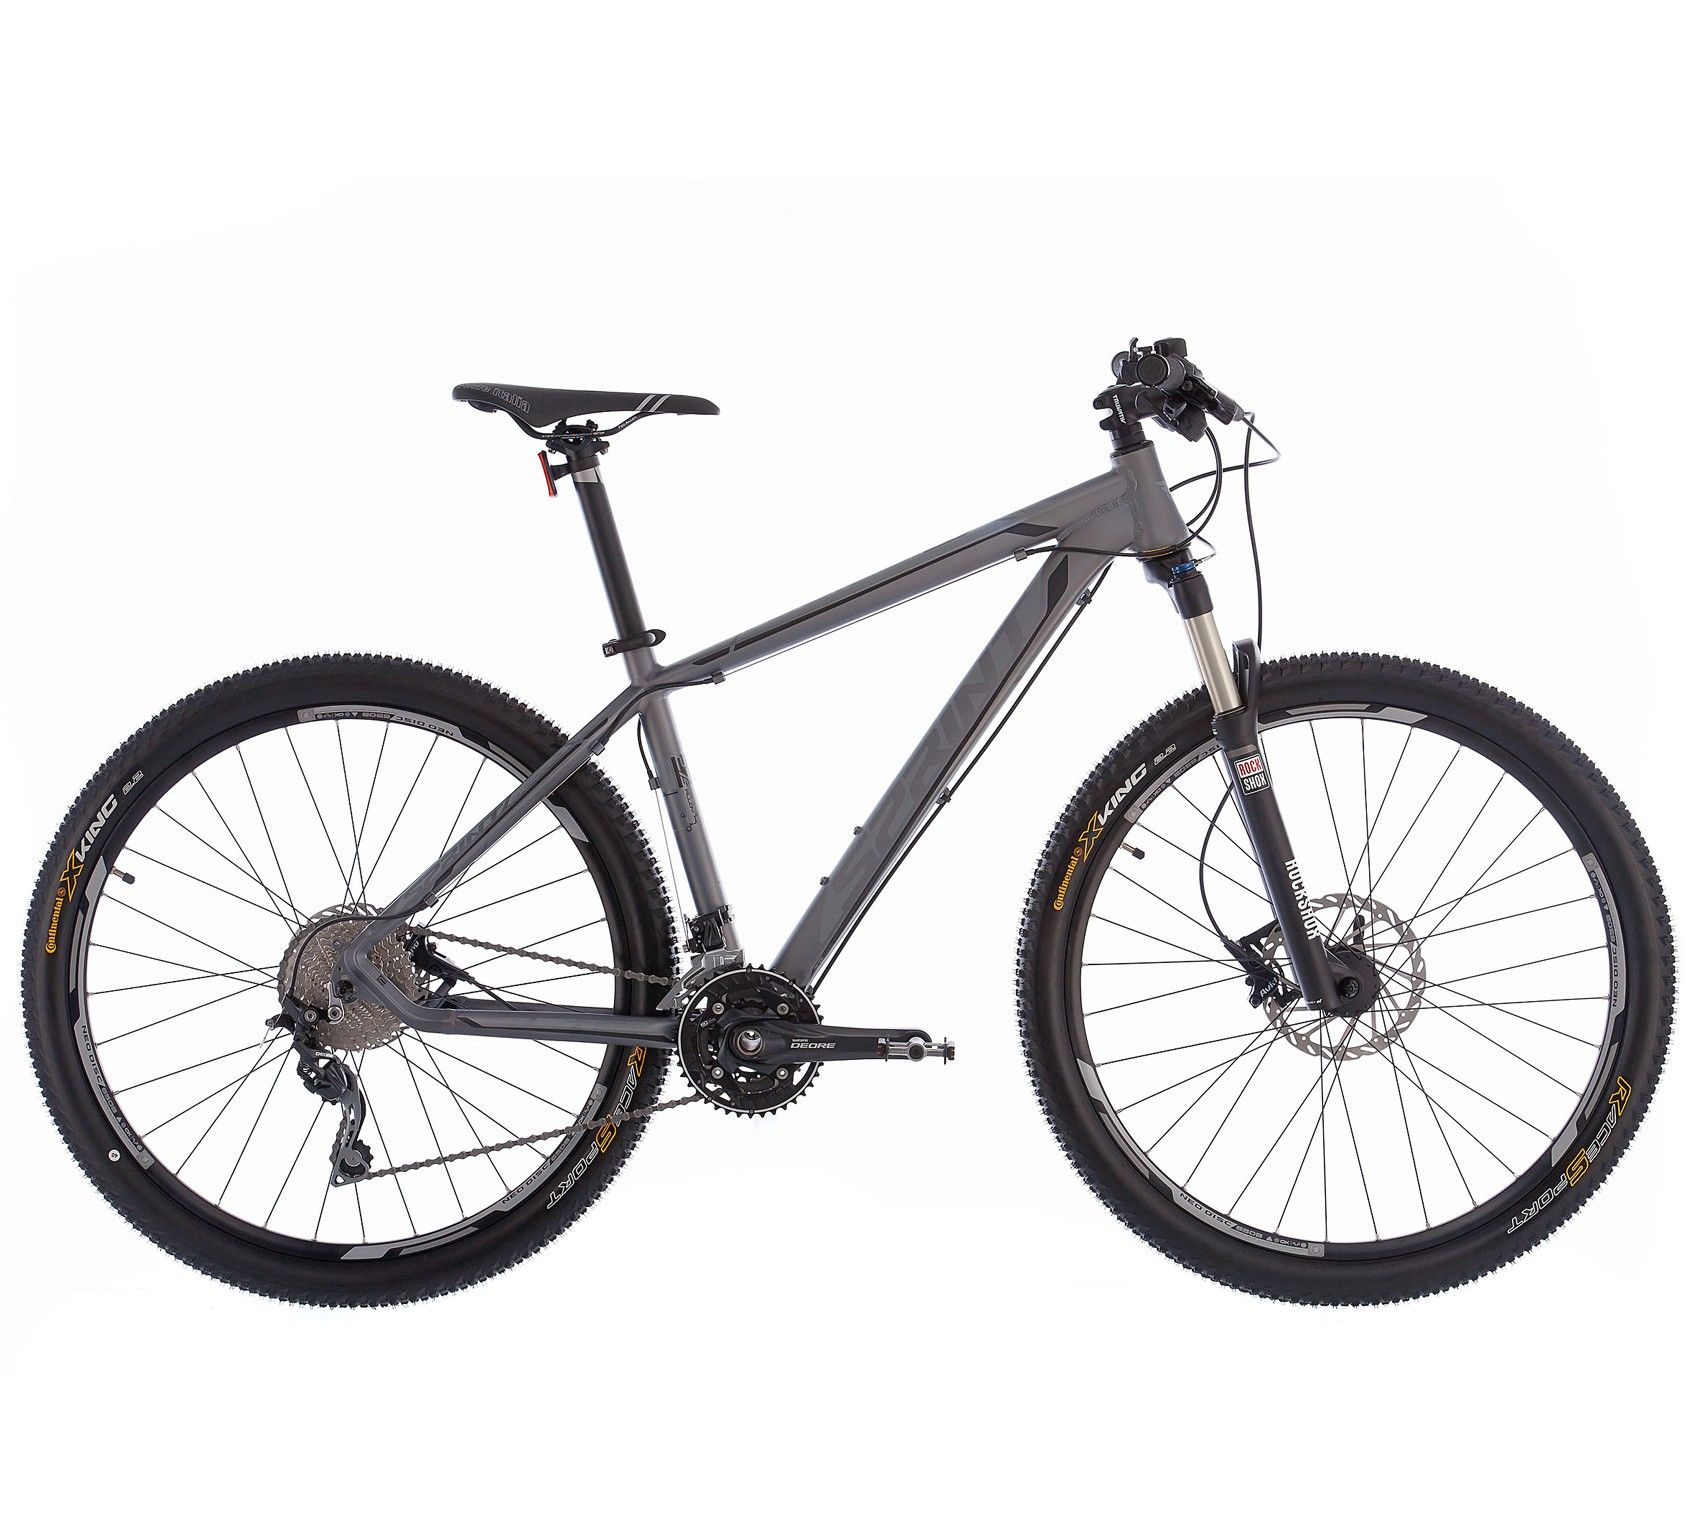 Sprint Mtb This High End Mtb From Mtb Is 24 Speed Mountain Bike Designed To Give The Ride A Comfortable Ride Even In E 29er Mountain Bikes Bicycle Merida Bikes